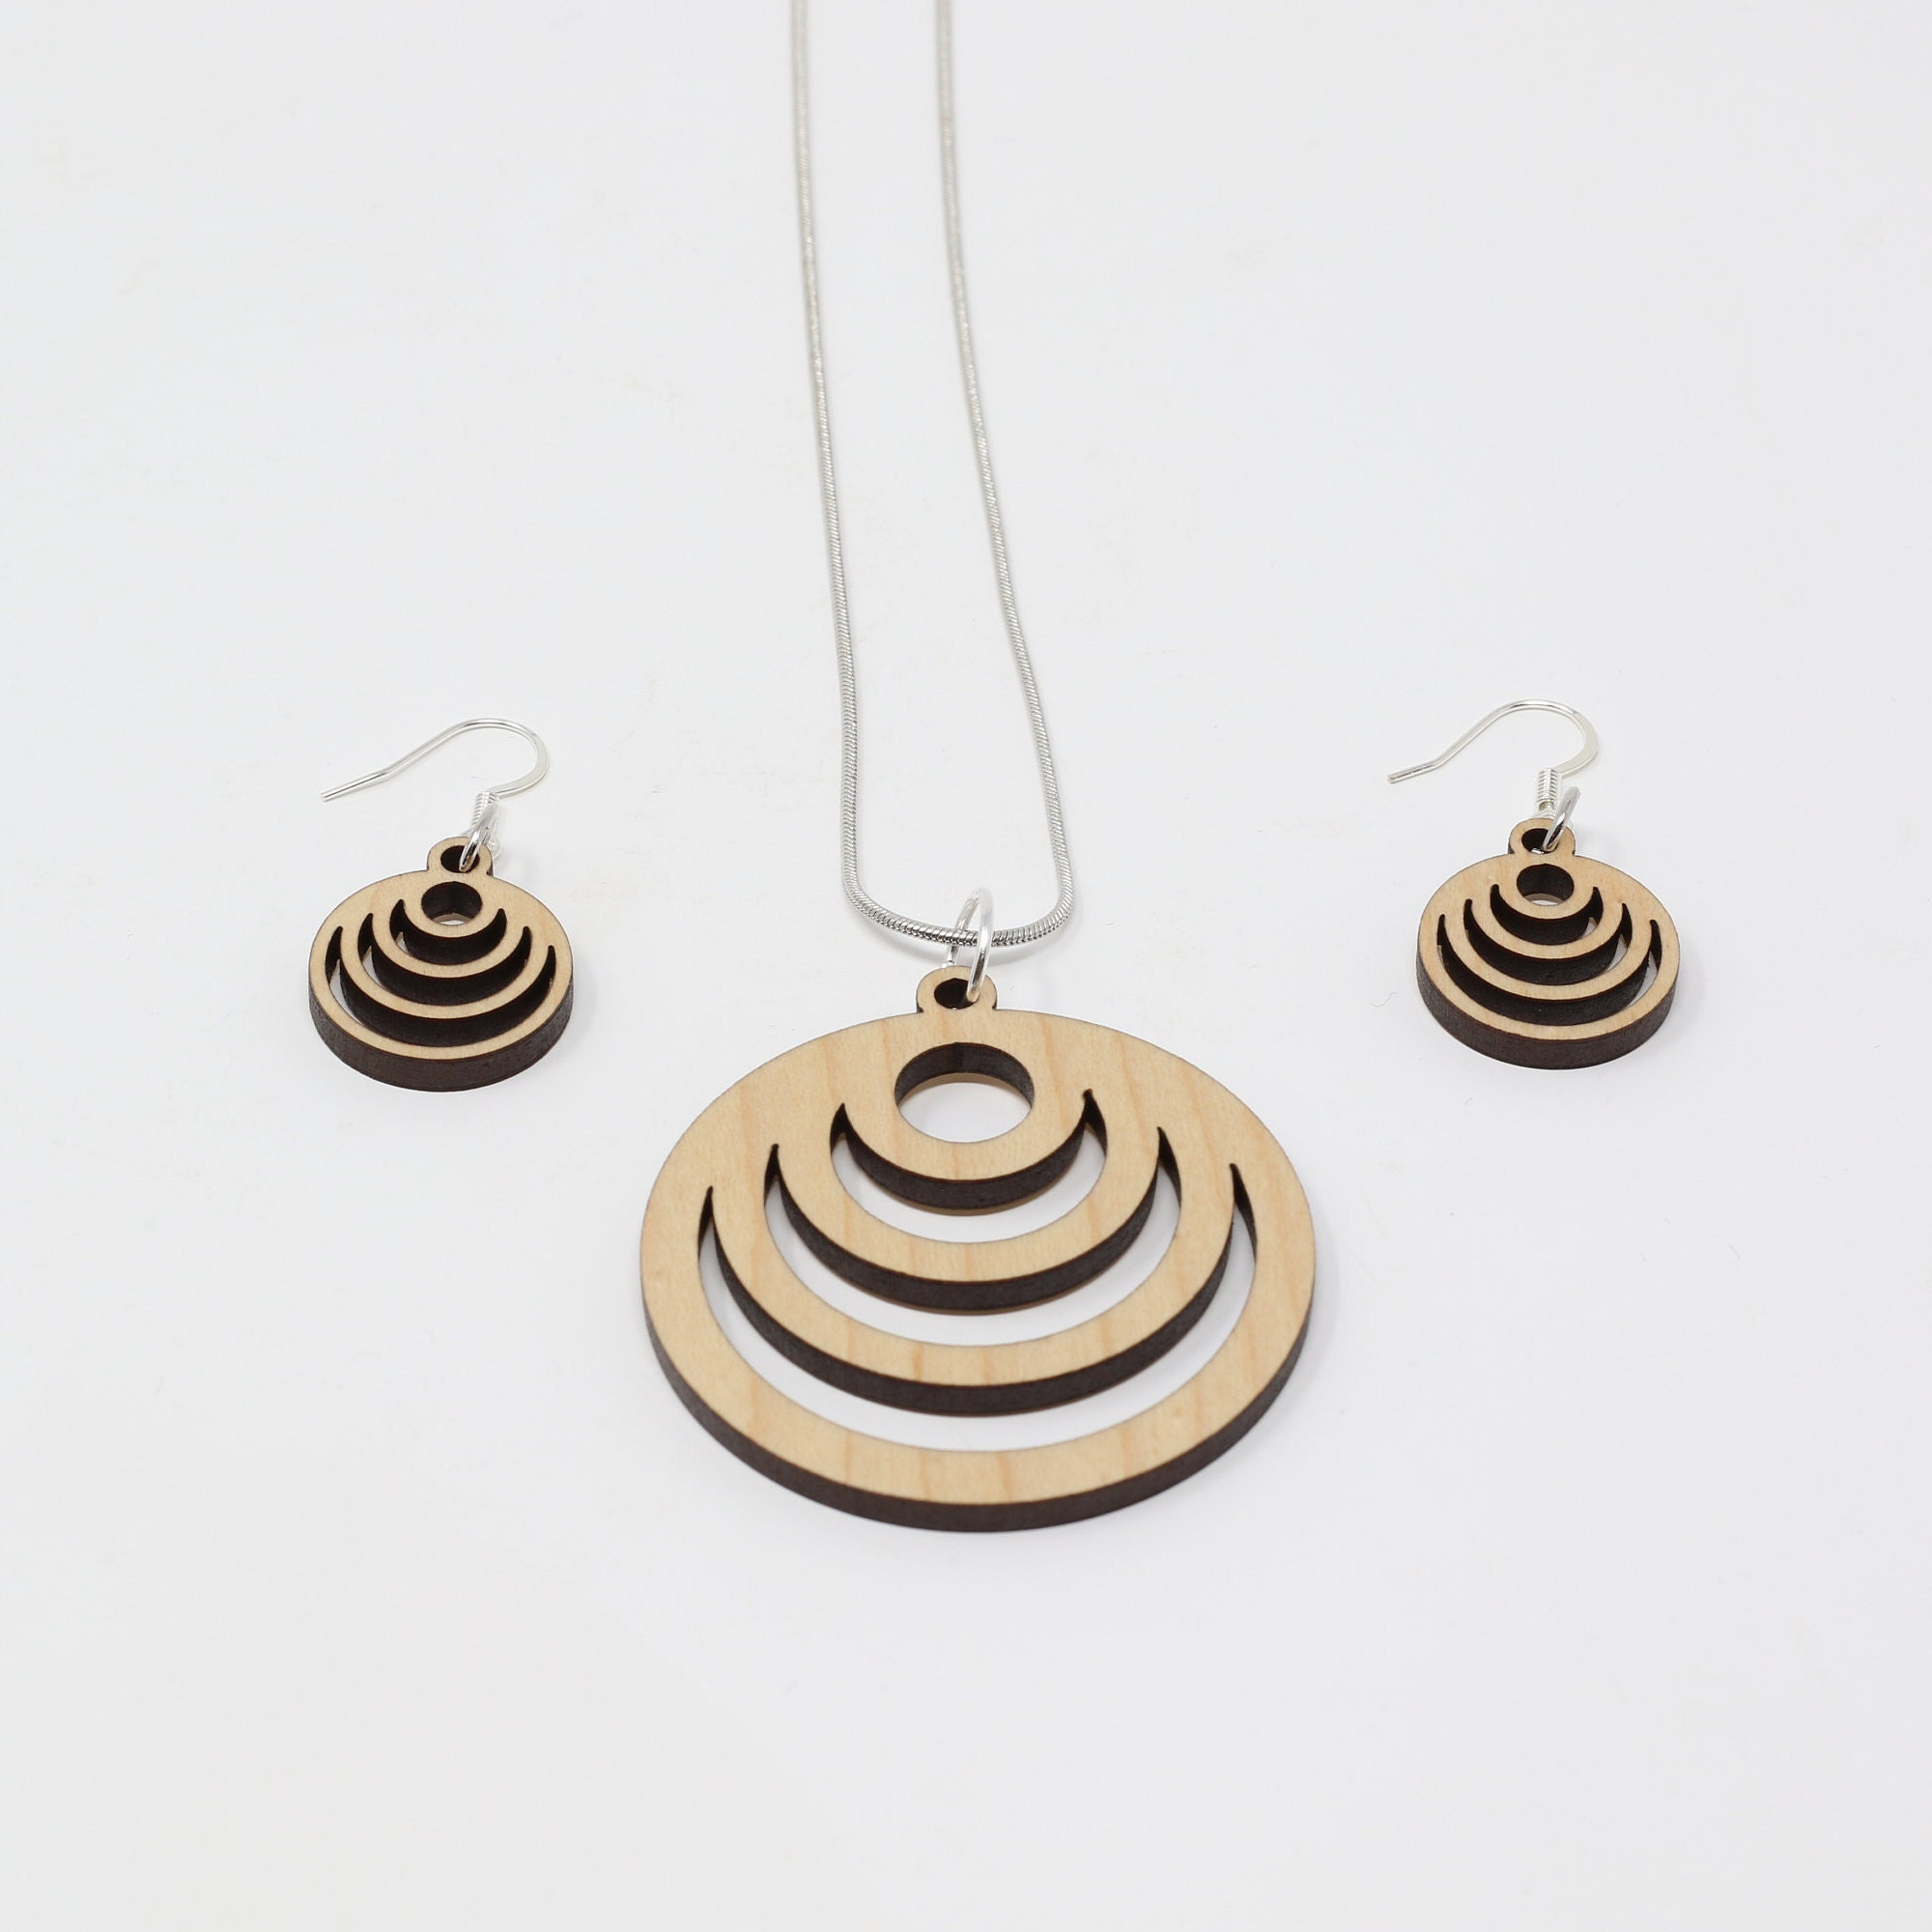 Concentric Circle Earrings: Concentric Circles Necklace And Earrings Set